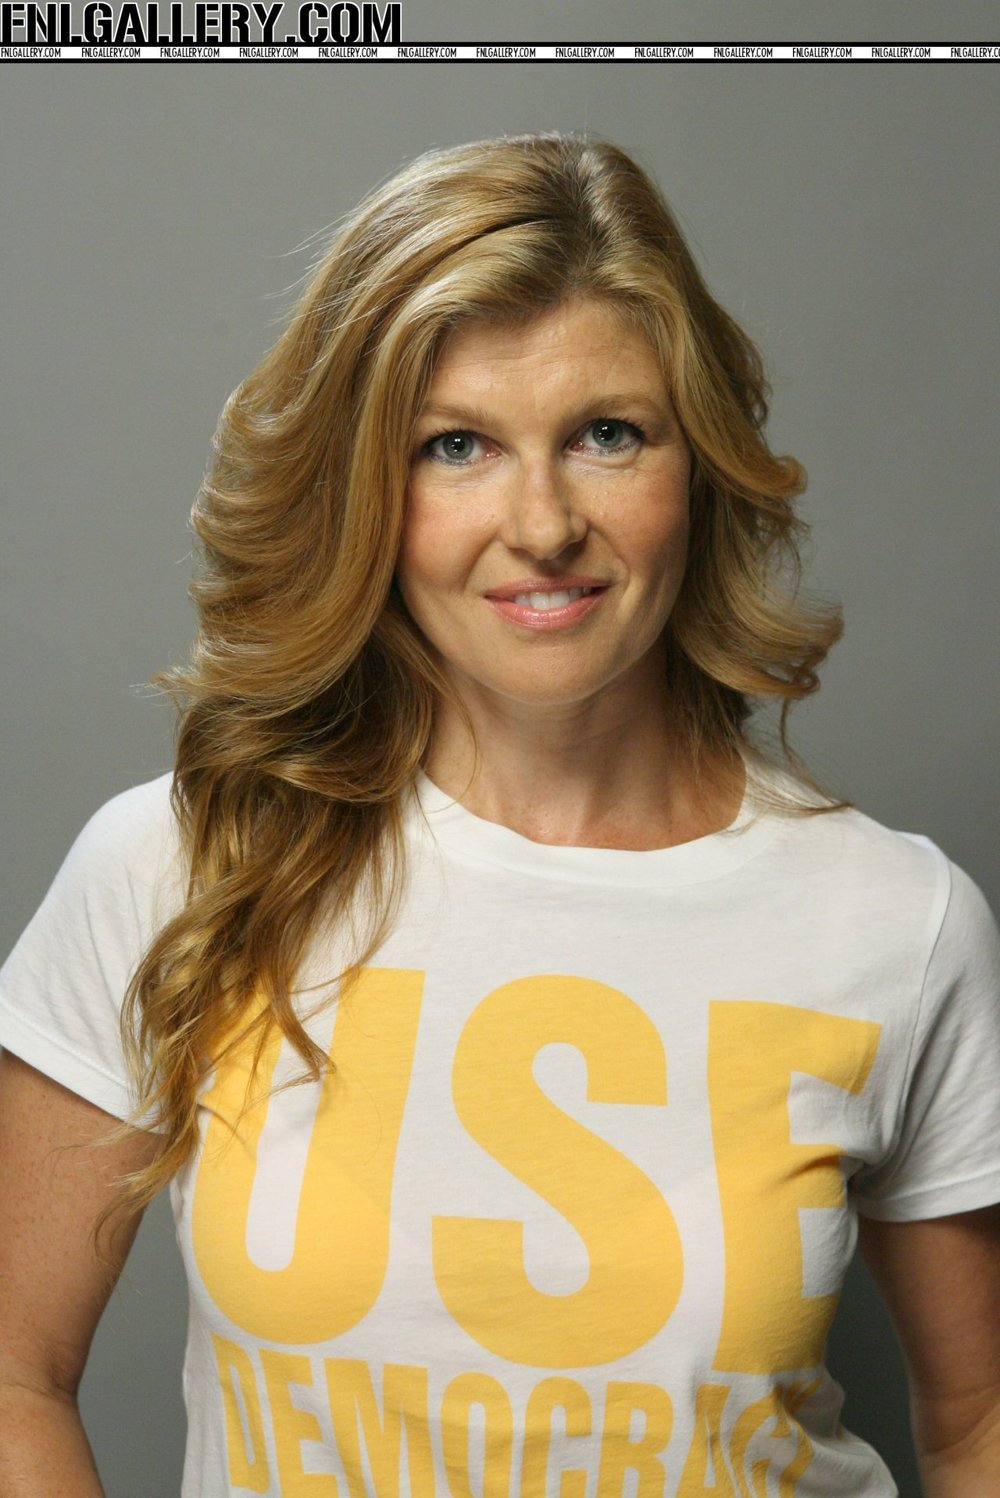 Connie Britton - Actress